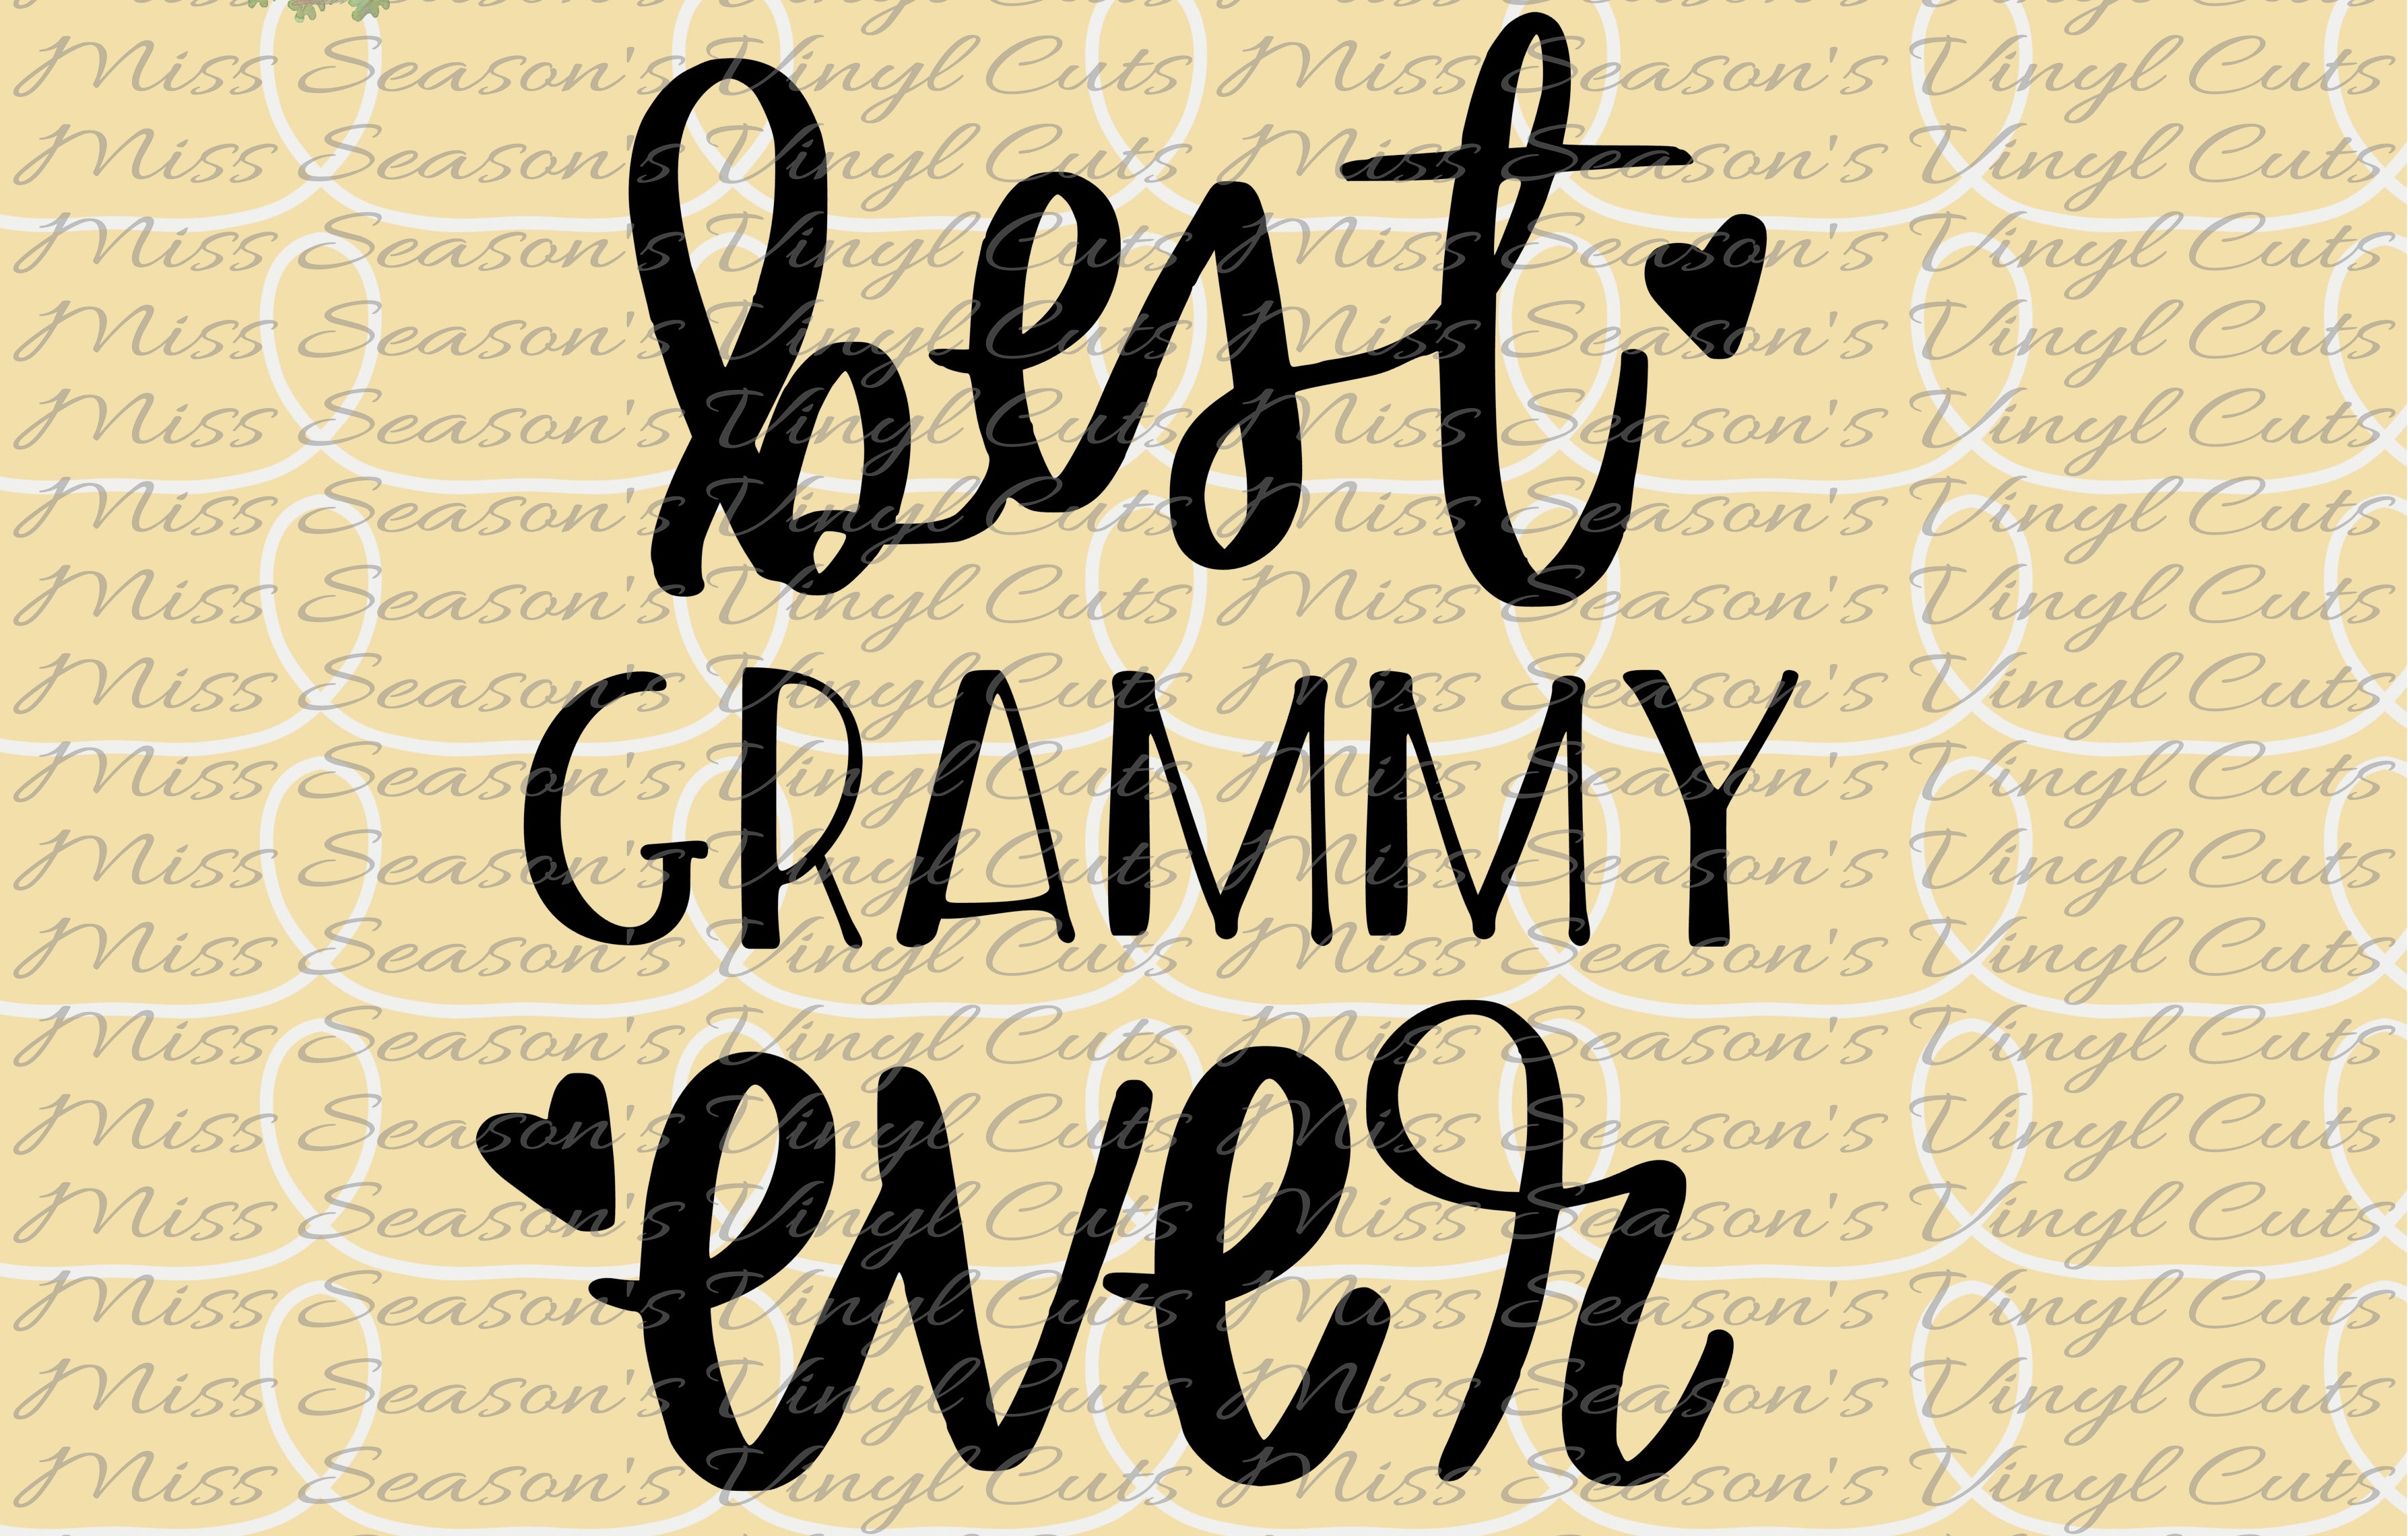 Download Free Best Grammy Ever Hand Lettered Graphic By Missseasonsvinylcuts for Cricut Explore, Silhouette and other cutting machines.